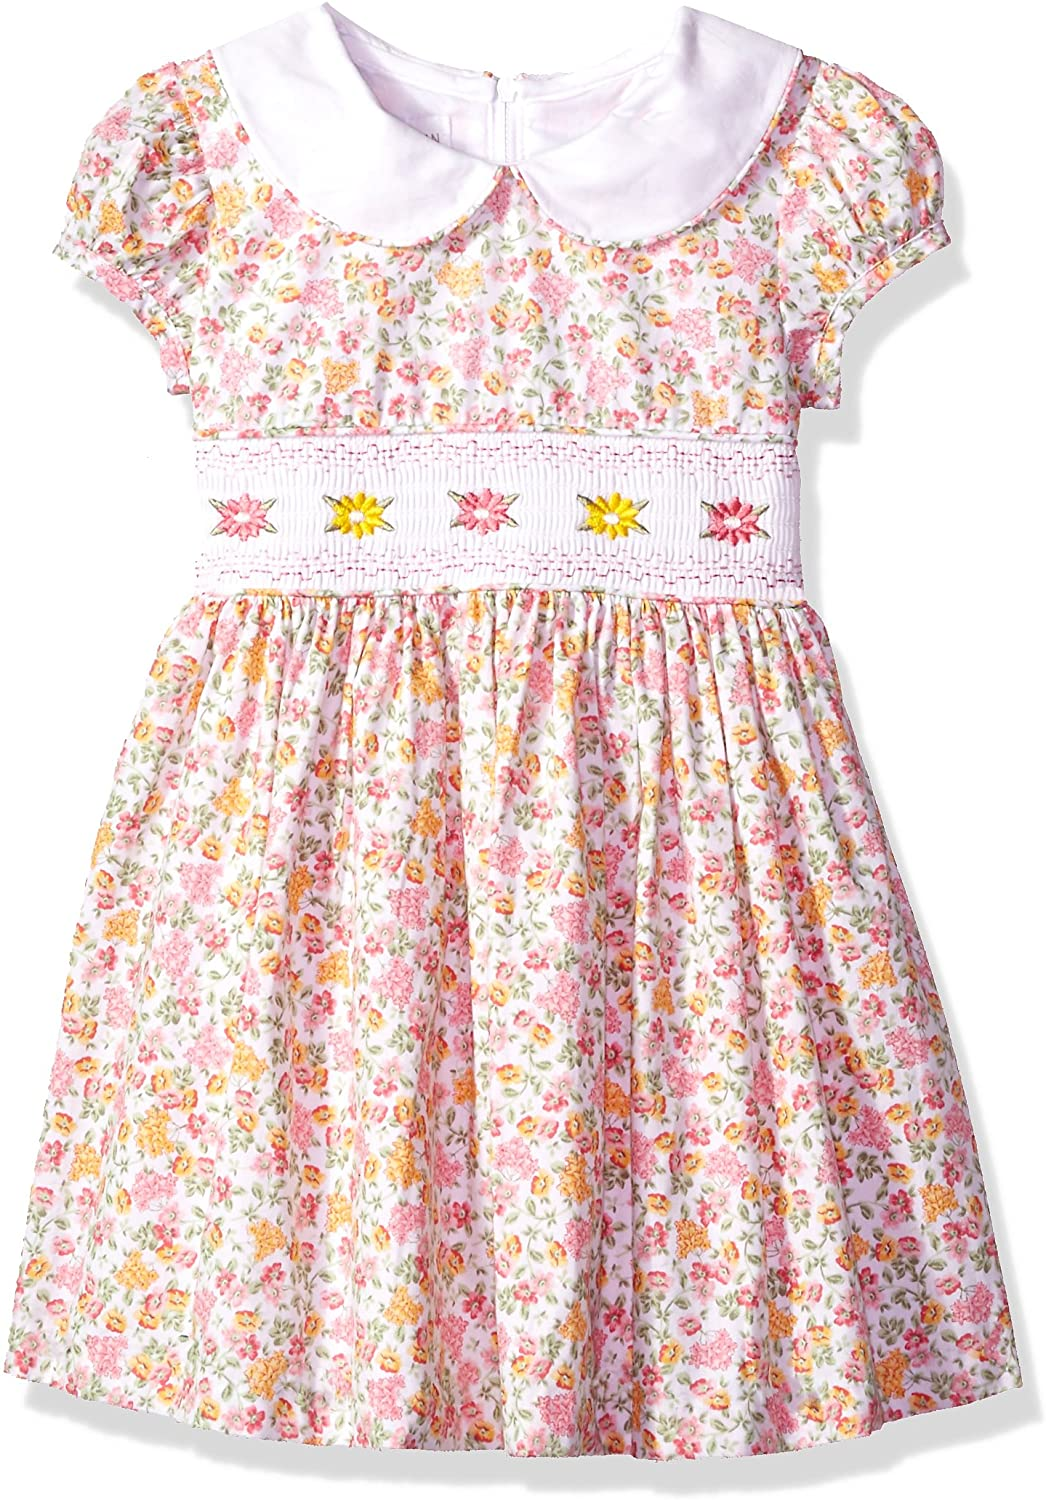 1940s Children's Clothing: Girls, Boys, Baby, Toddler Bonnie Jean Girls Collared Cotton Dress $31.59 AT vintagedancer.com